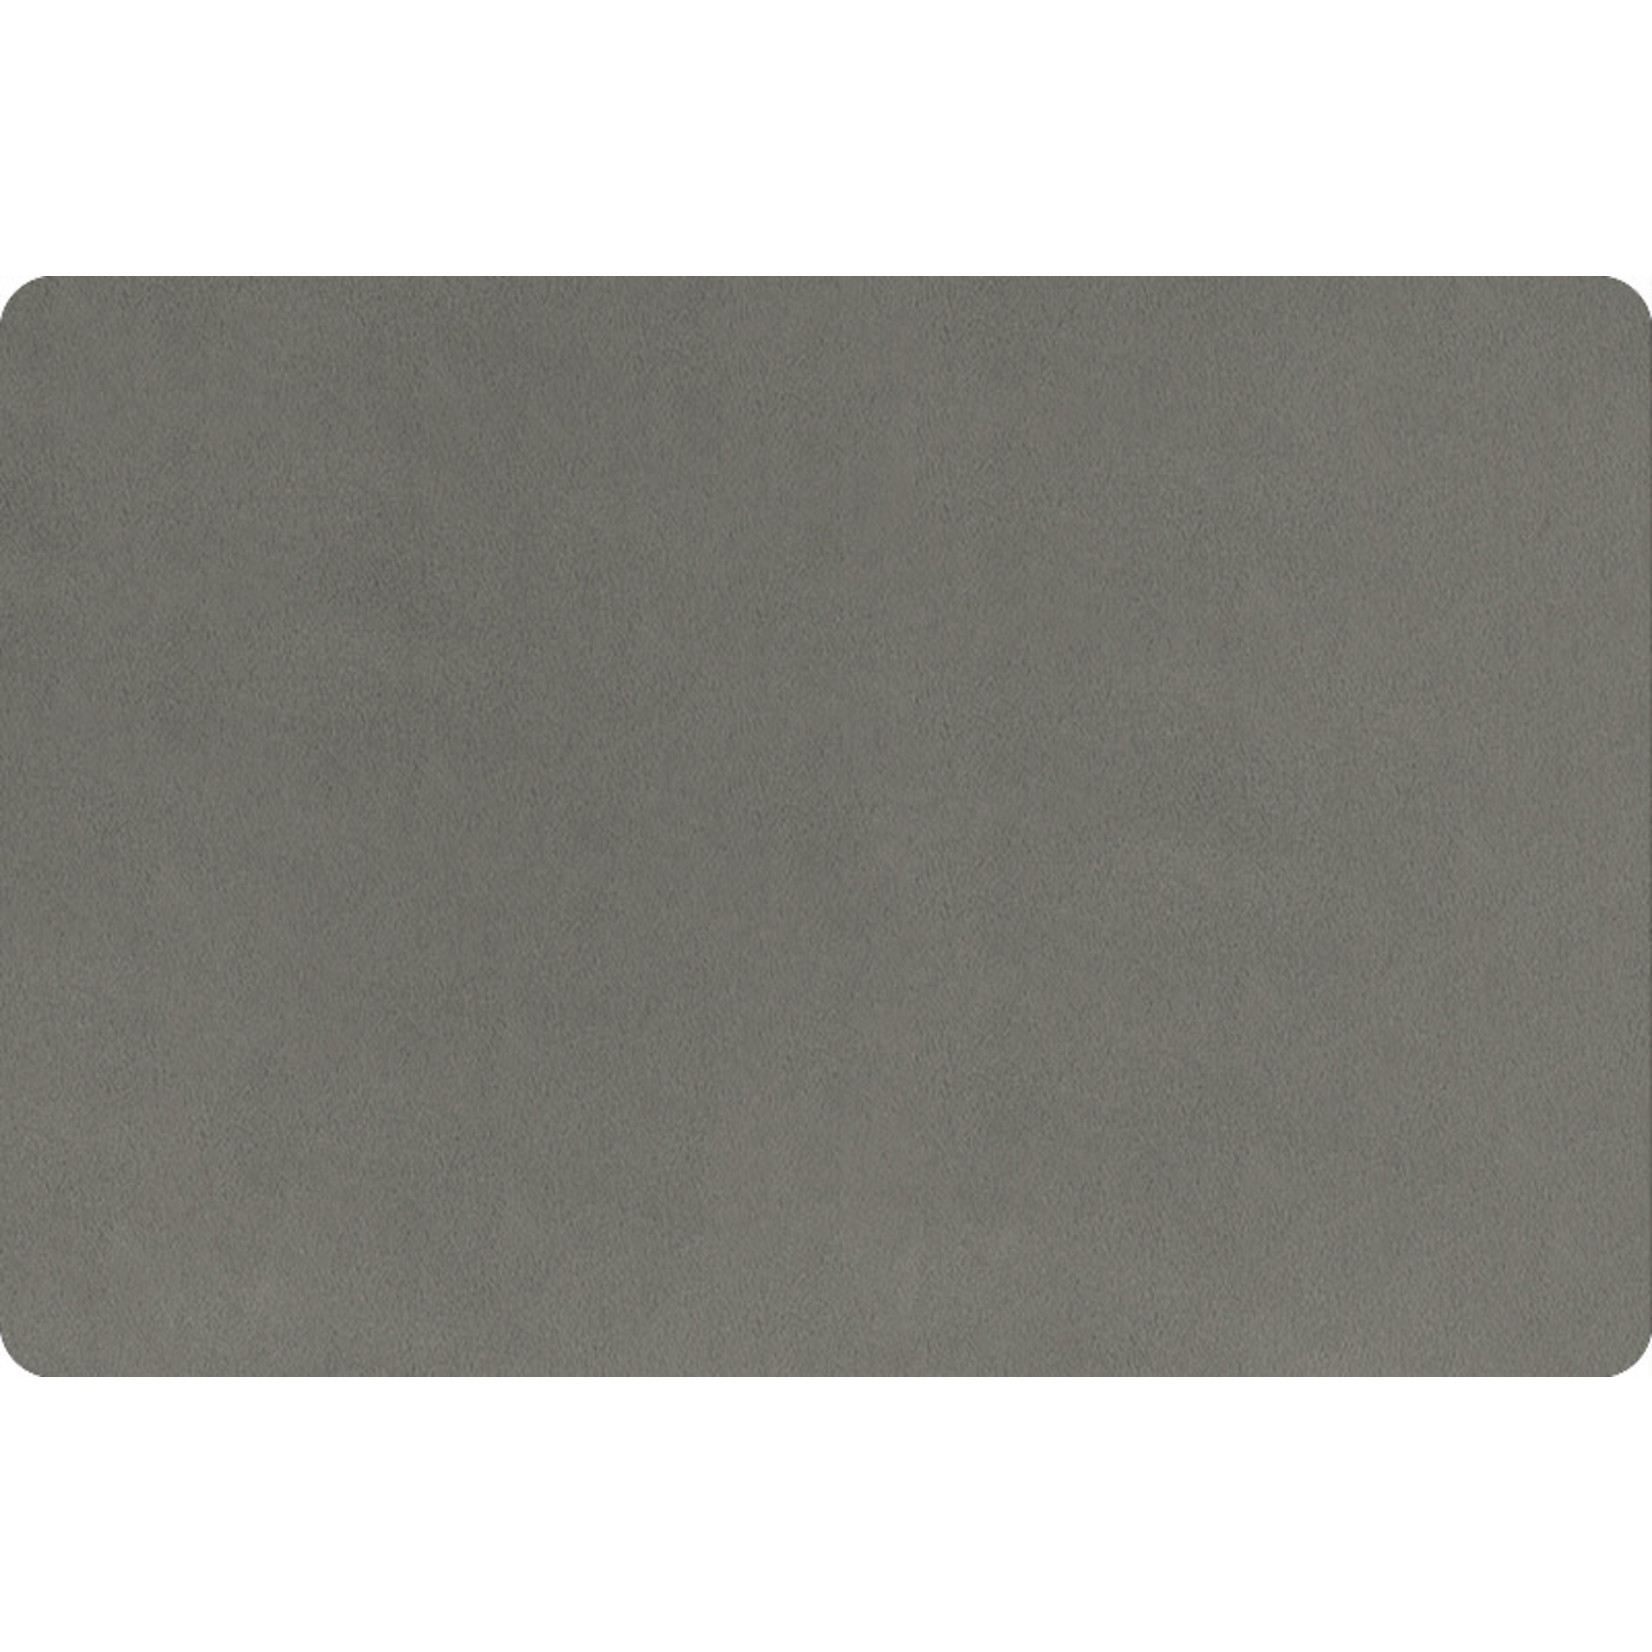 """Shannon Fabrics Minky, Extra Wide Solid Cuddle3, 90"""" Charcoal, (by the inch)"""